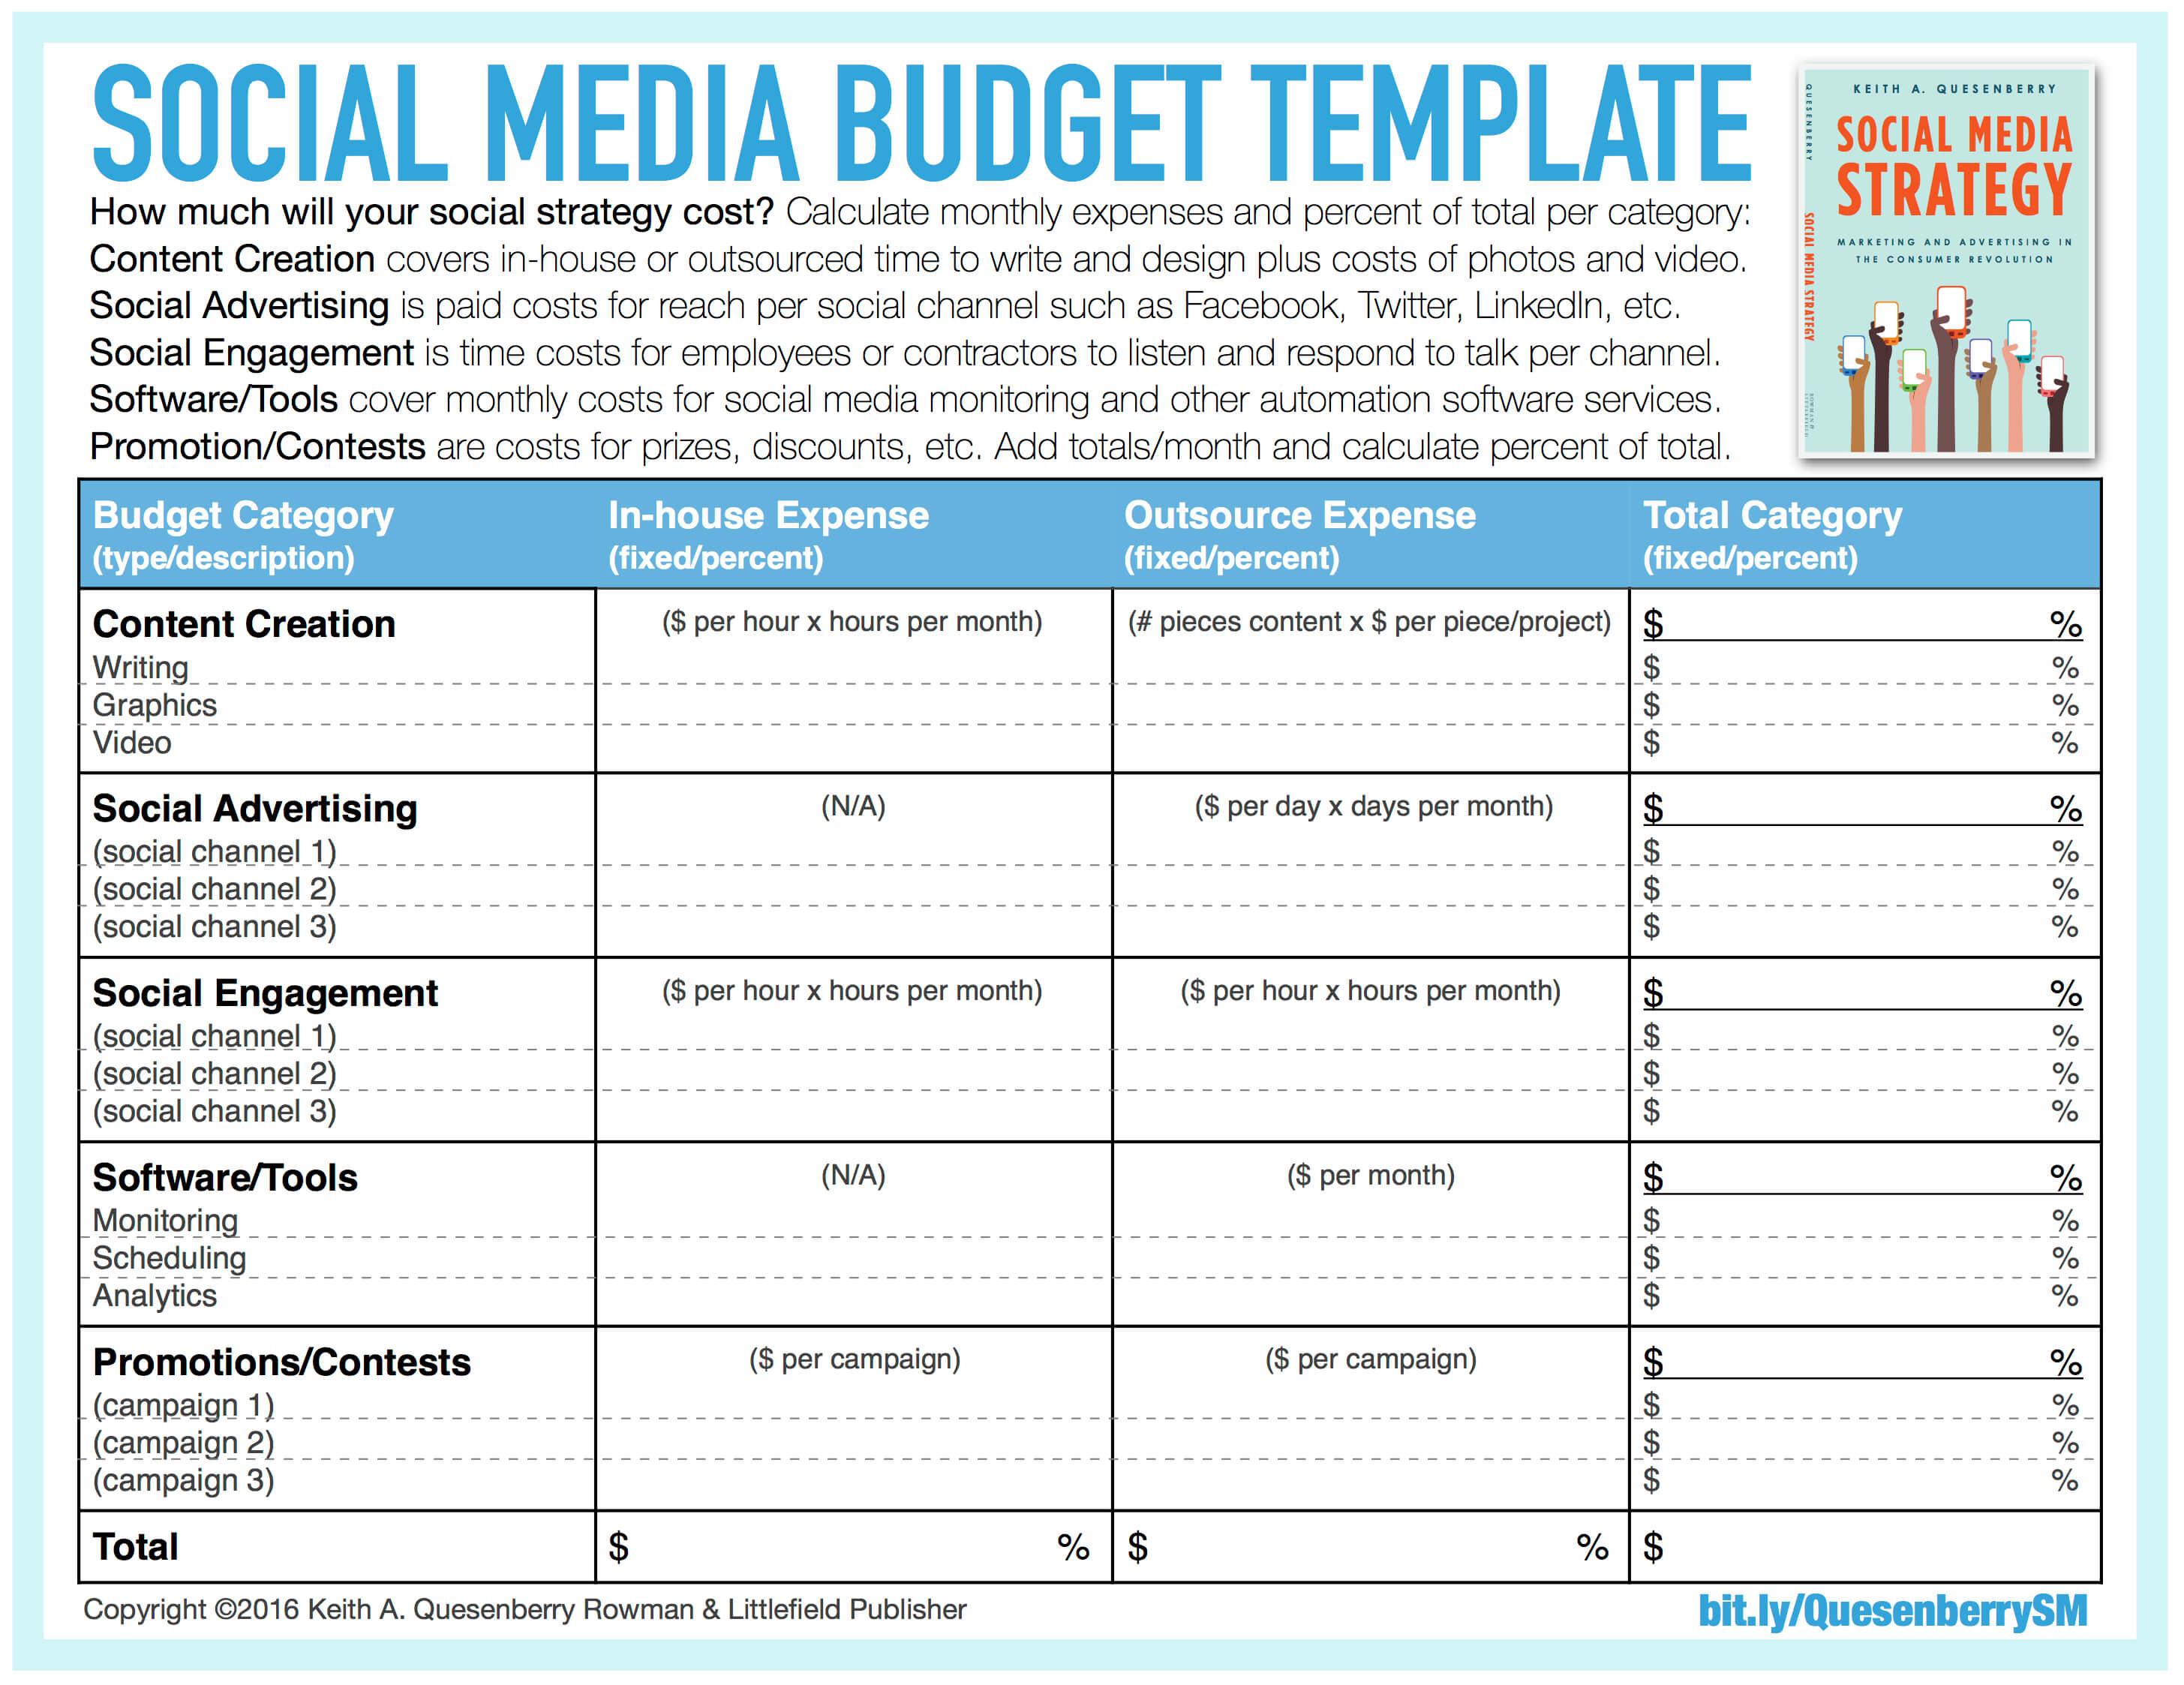 download sheet Free Social Media Budget Template – Ryan's